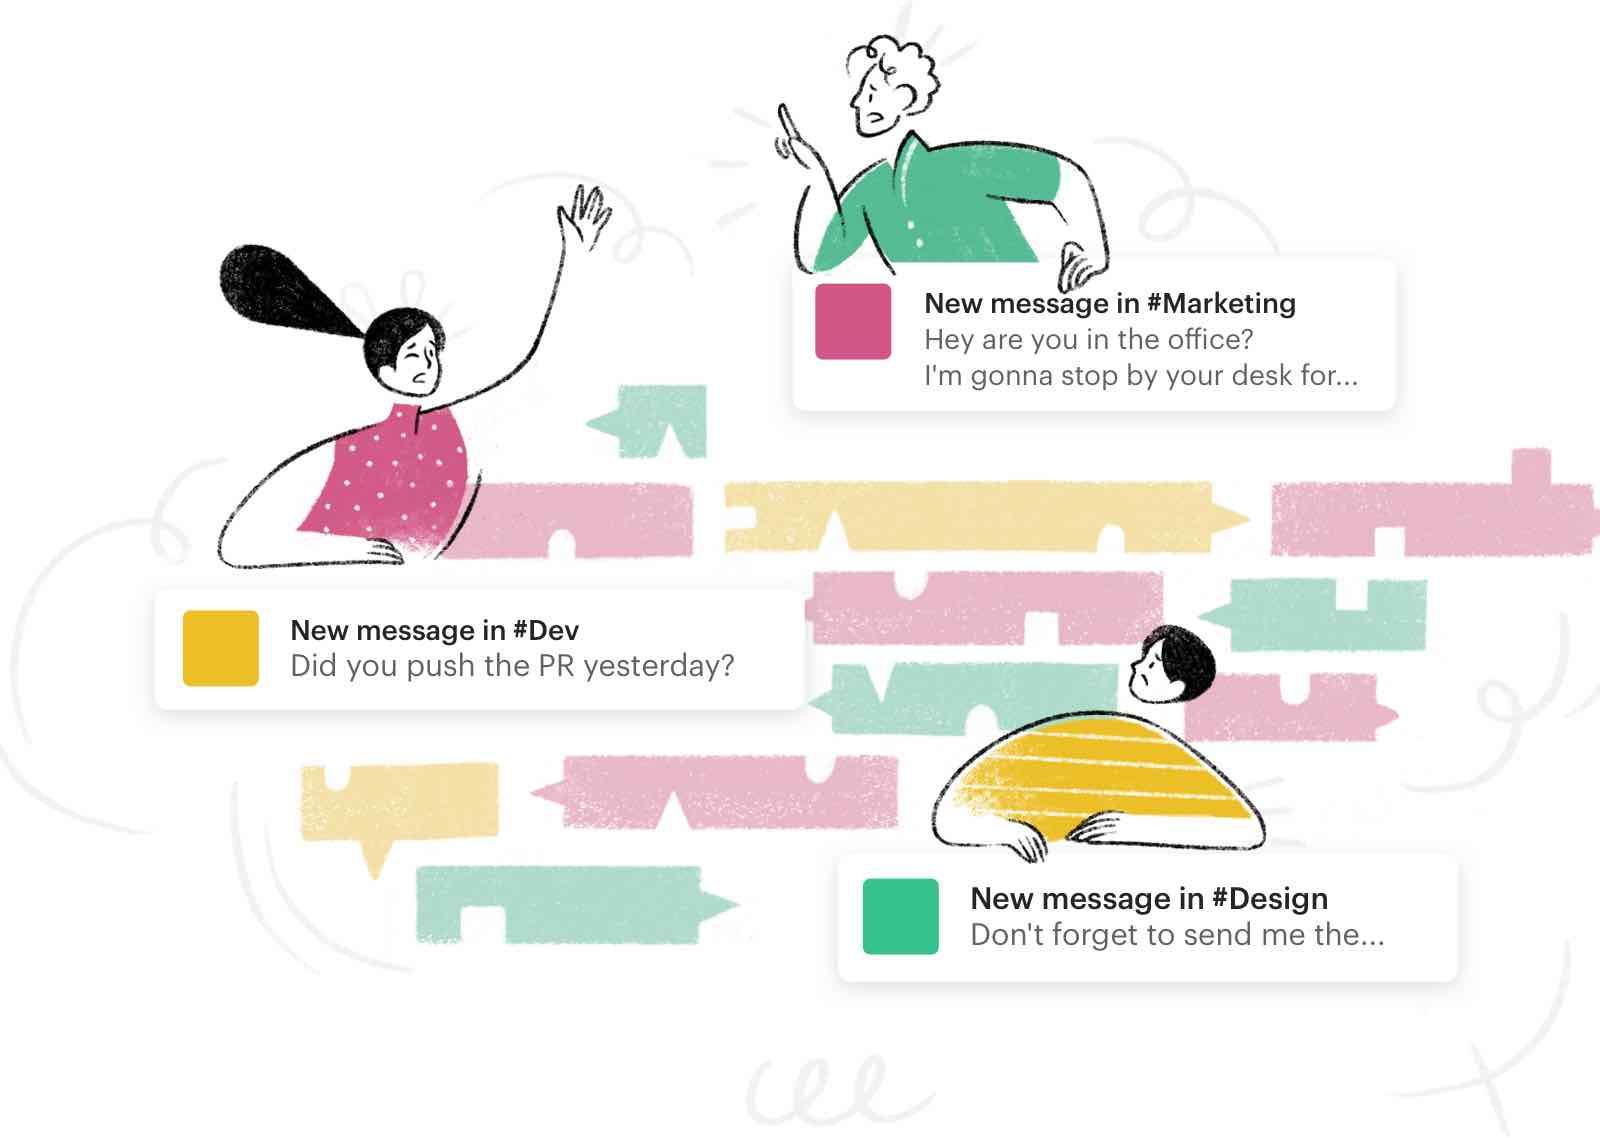 slack messages making communication confusing